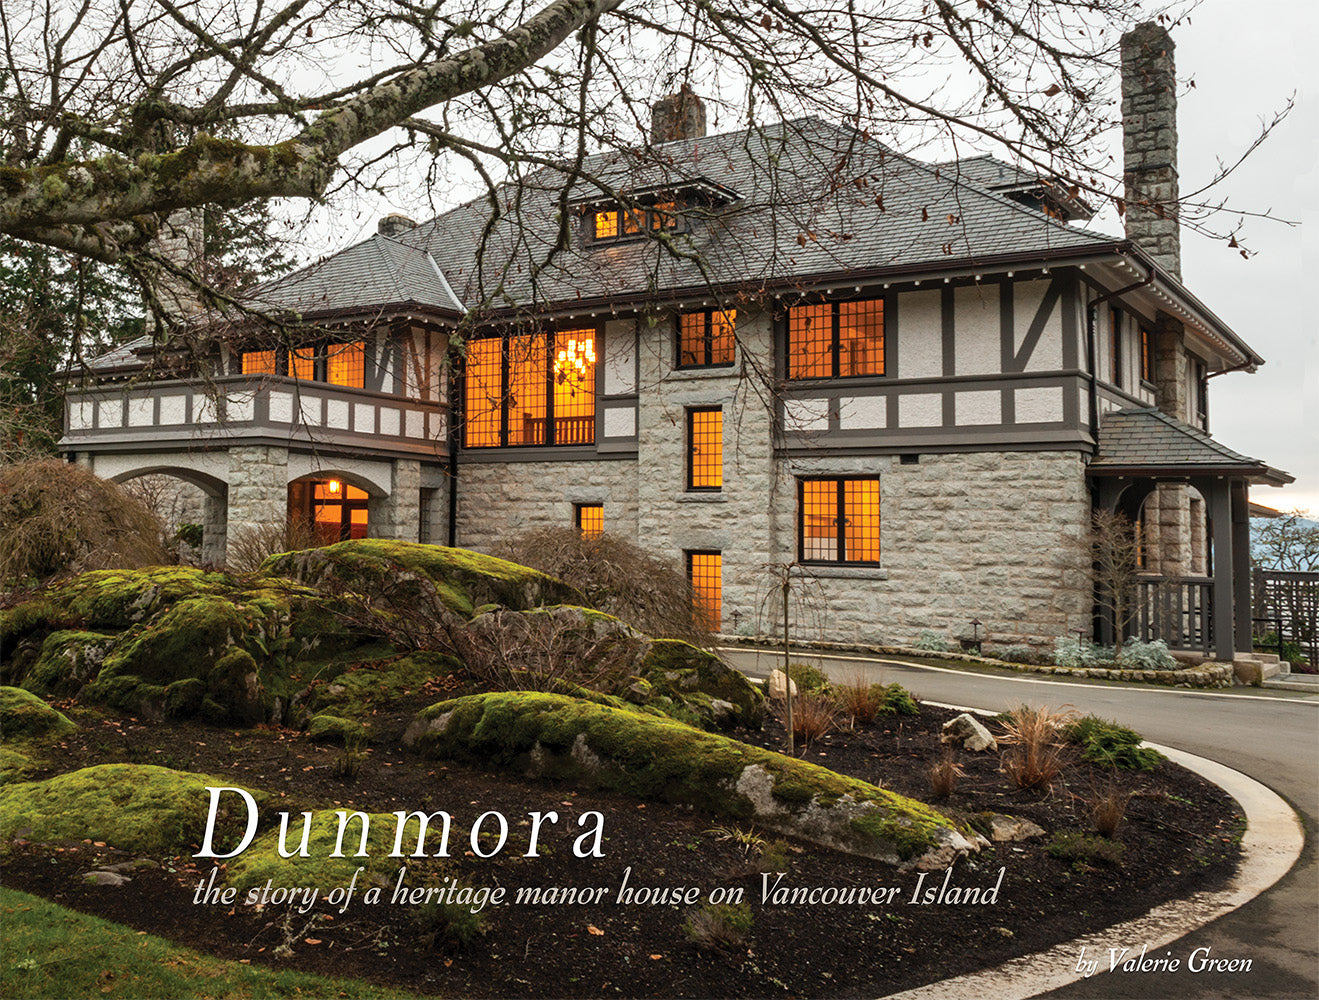 Dunmora: the story of a heritage manor house on Vancouver Island